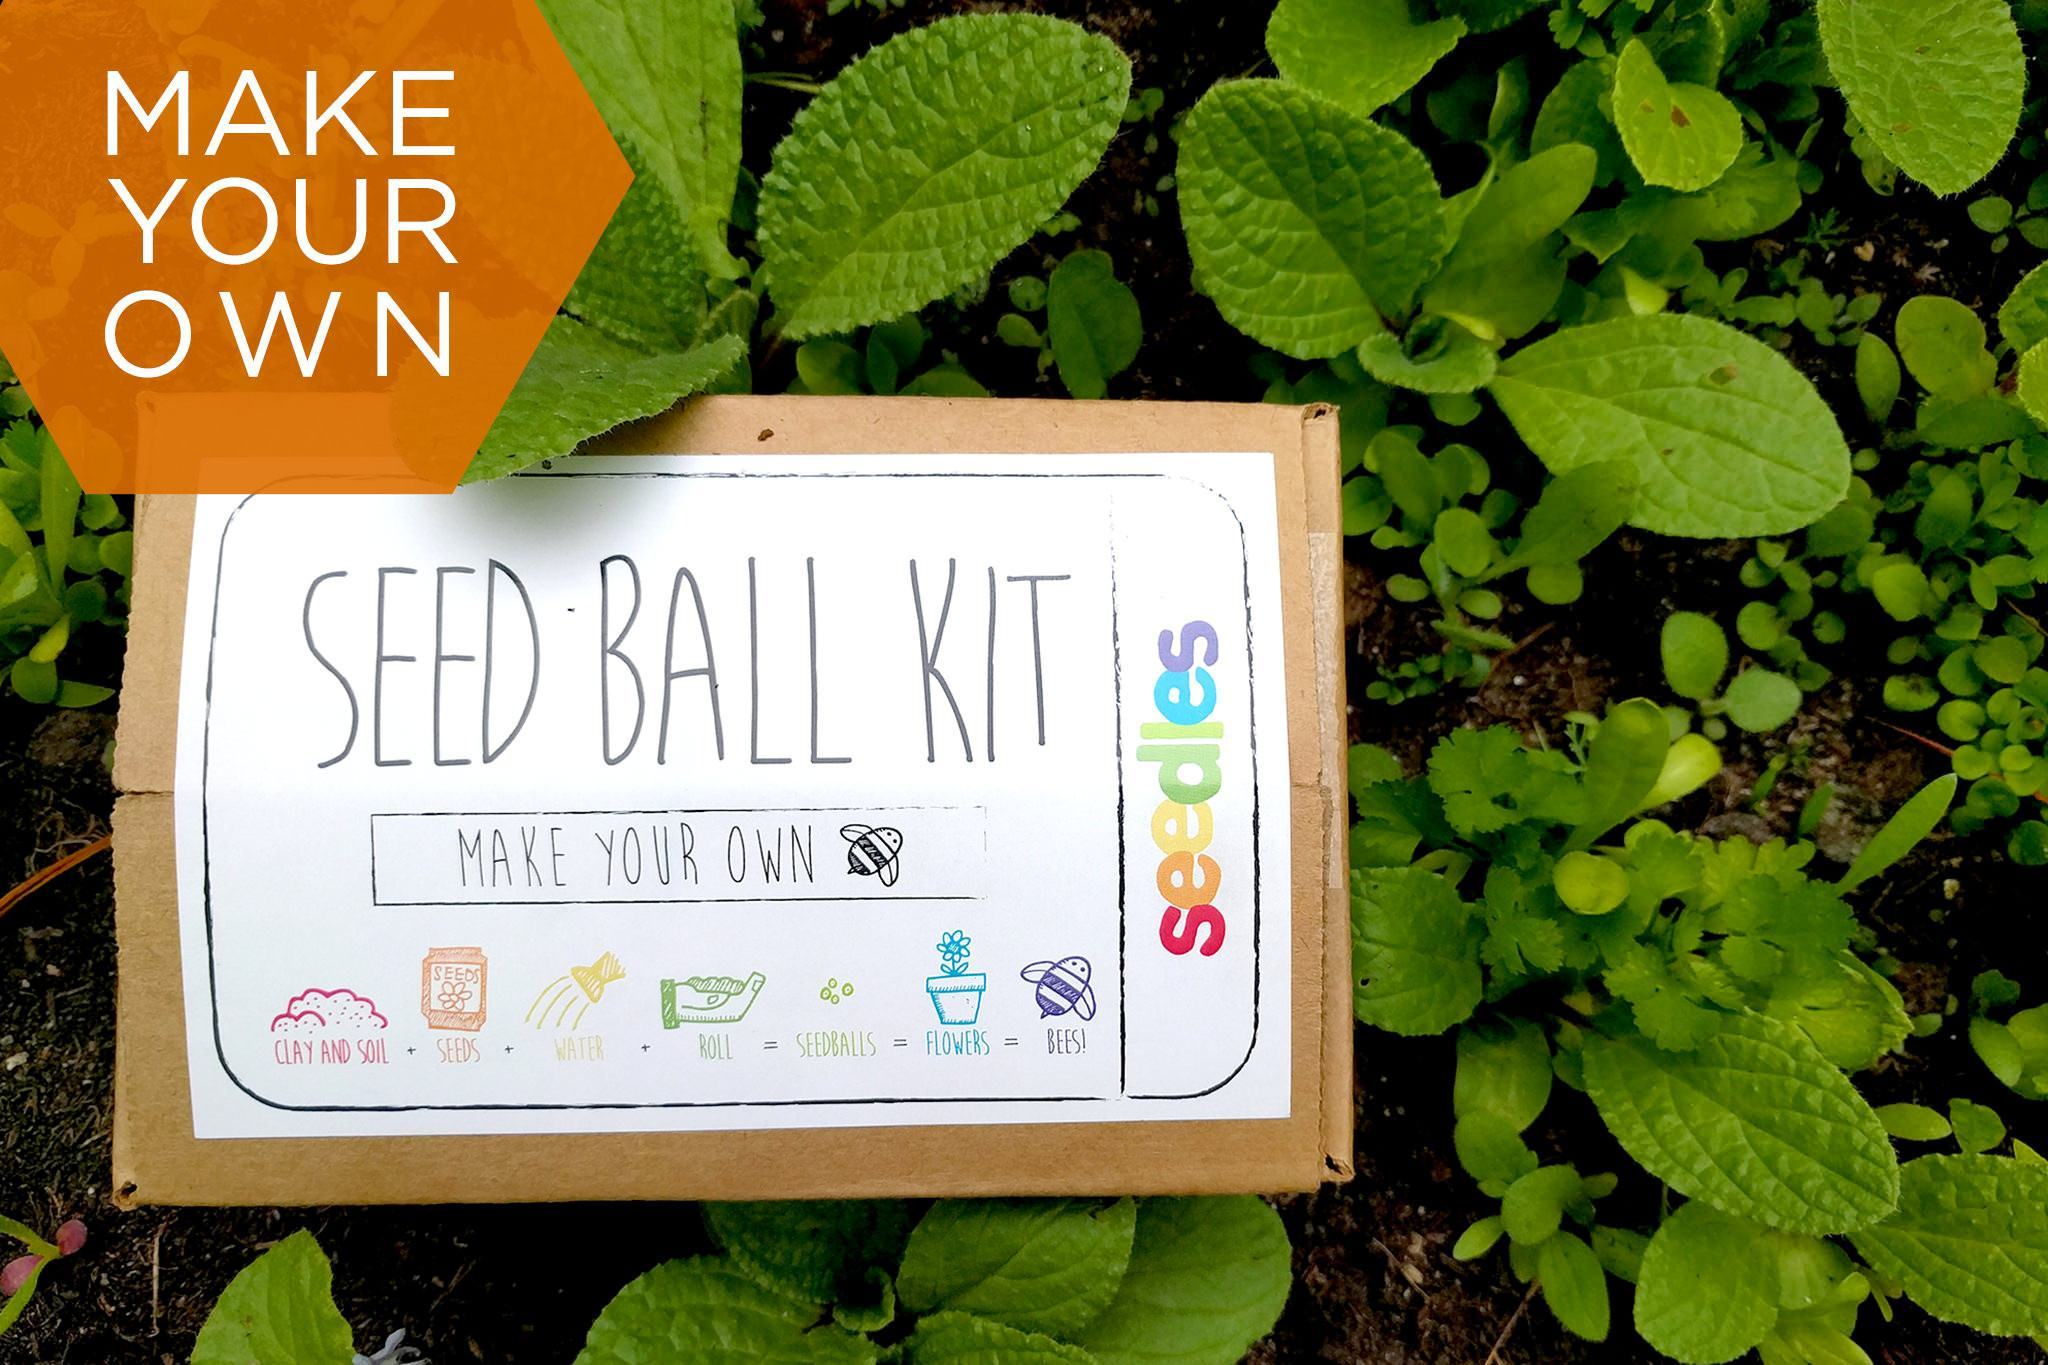 DIY Wildflower Seed Ball Kit - Southeast